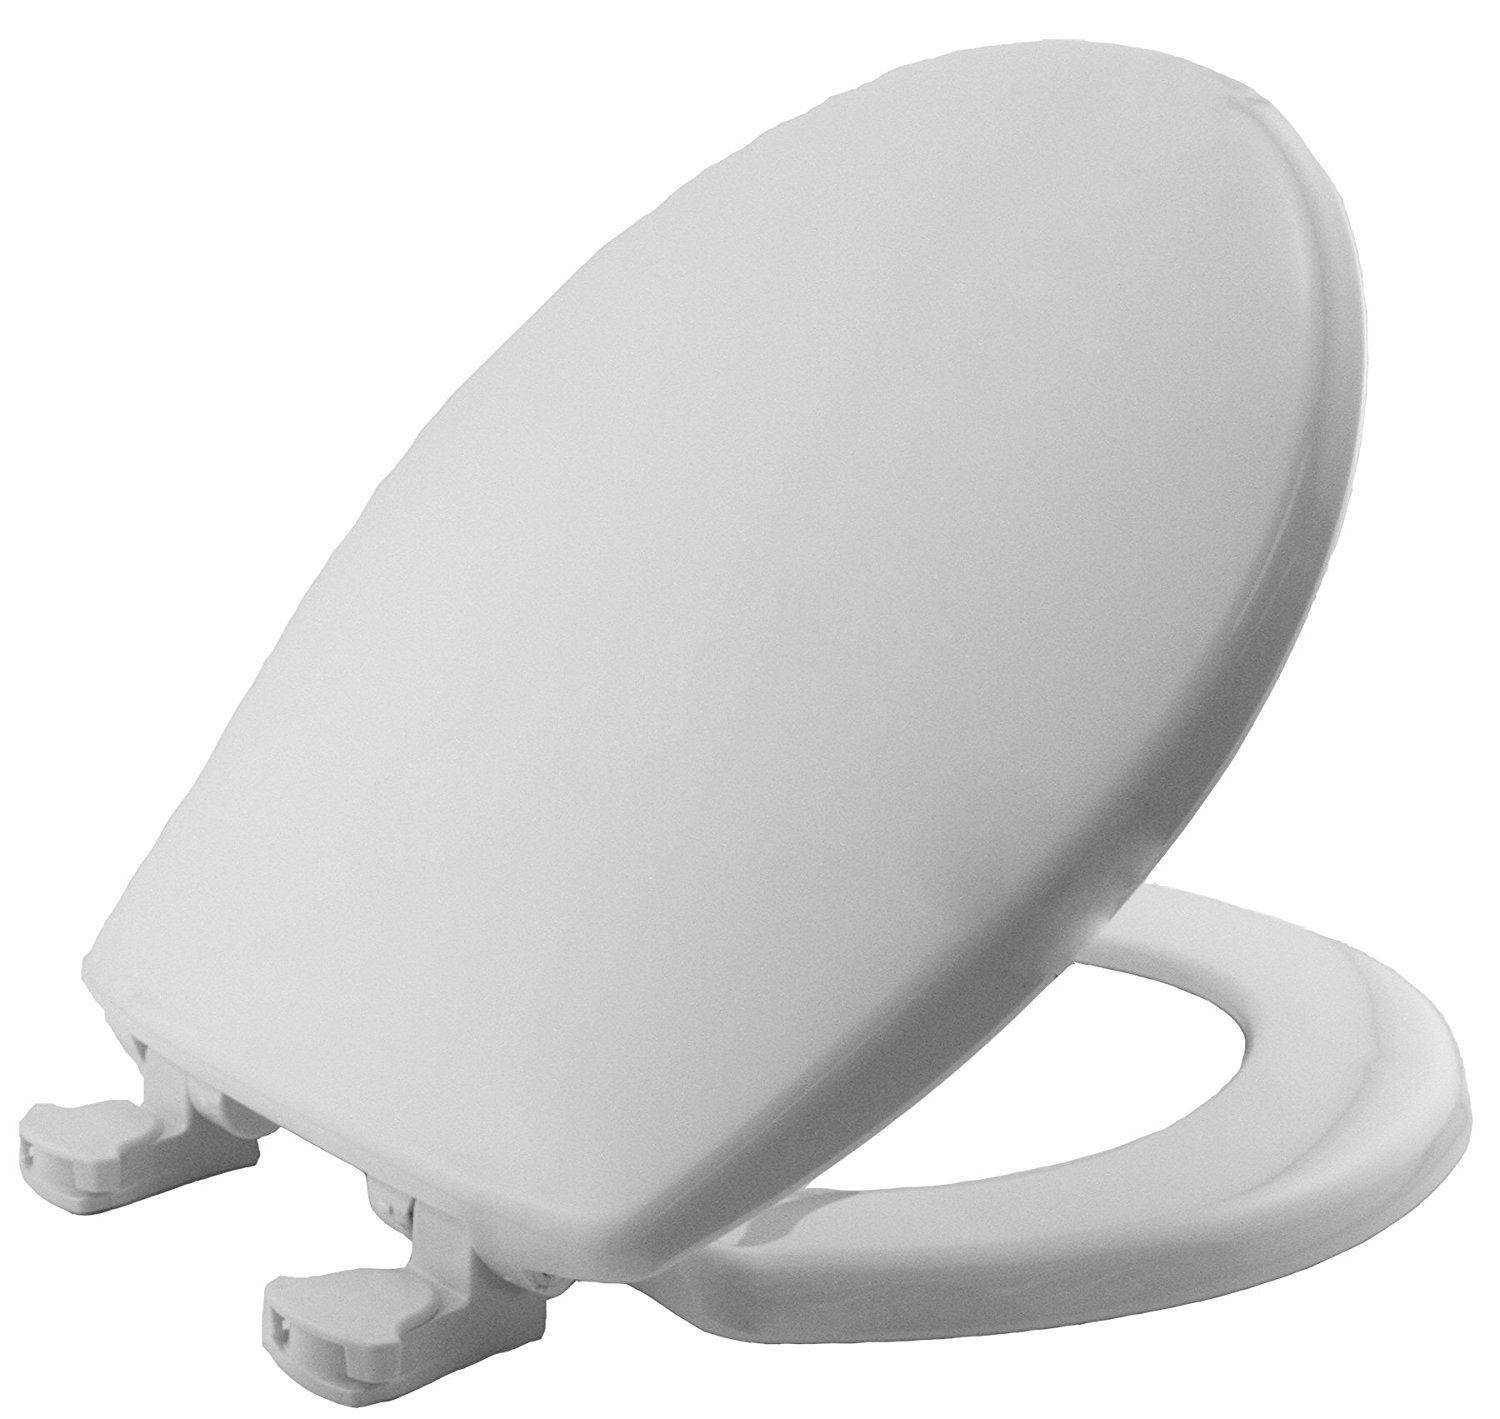 MAYFAIR 80EC 000 Toilet Seat will Never Loosen and Easily Remove, ROUND, Long Lasting Plastic, White